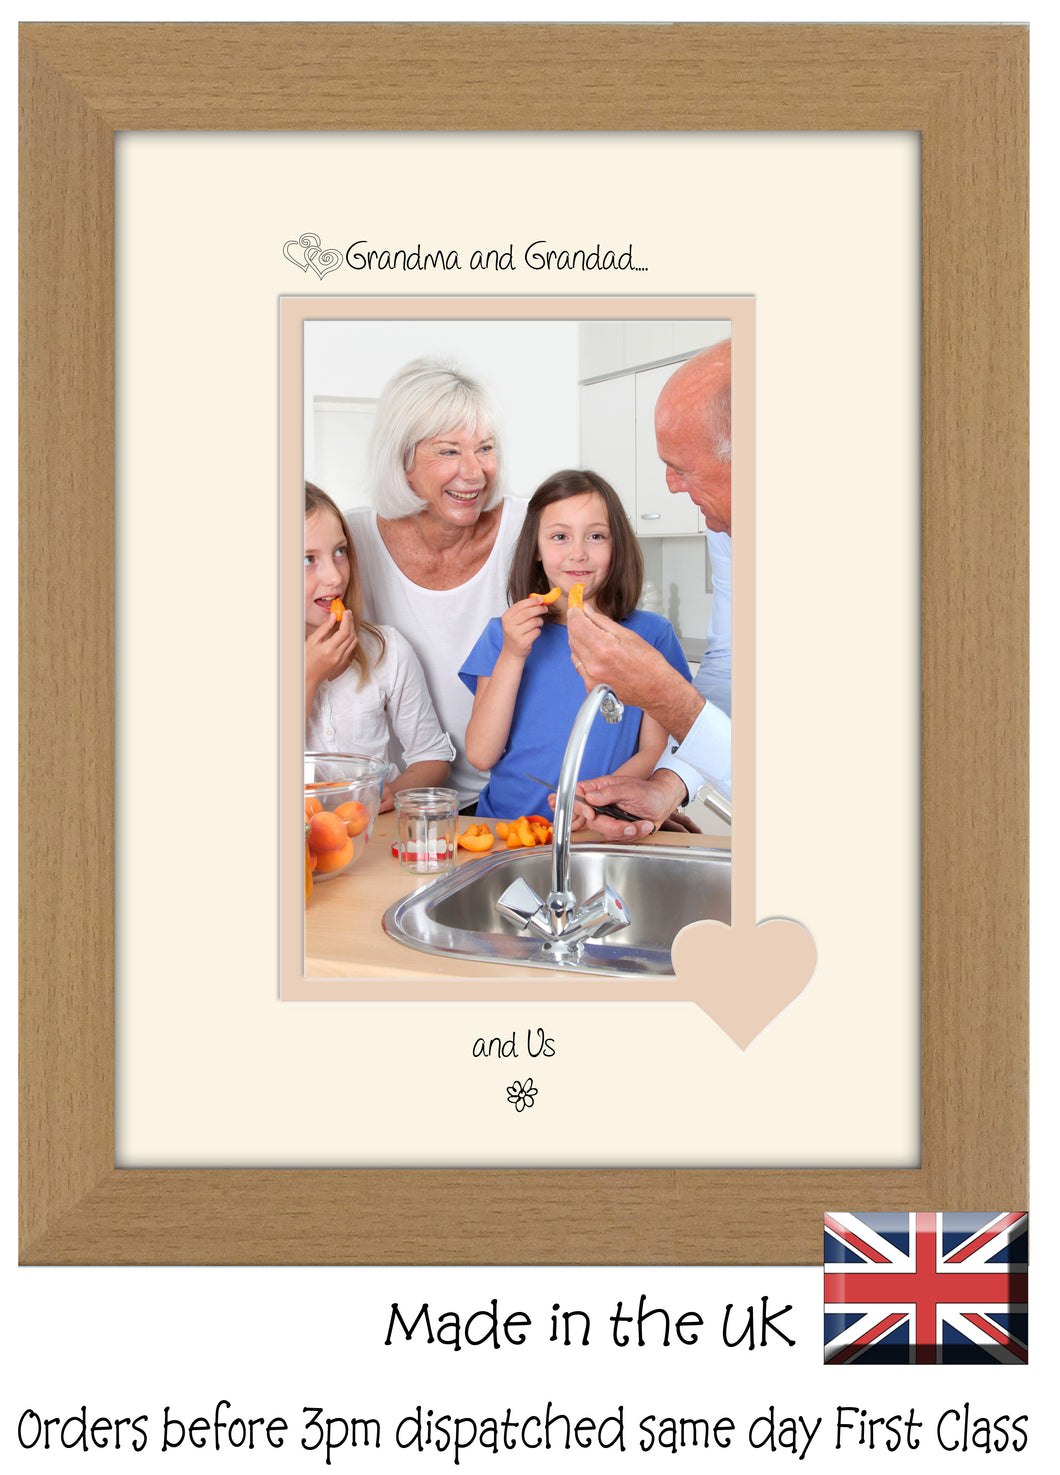 Grandma & Grandad Photo Frame - Grandma and Grandad… ...and us! Portrait photo frame 6